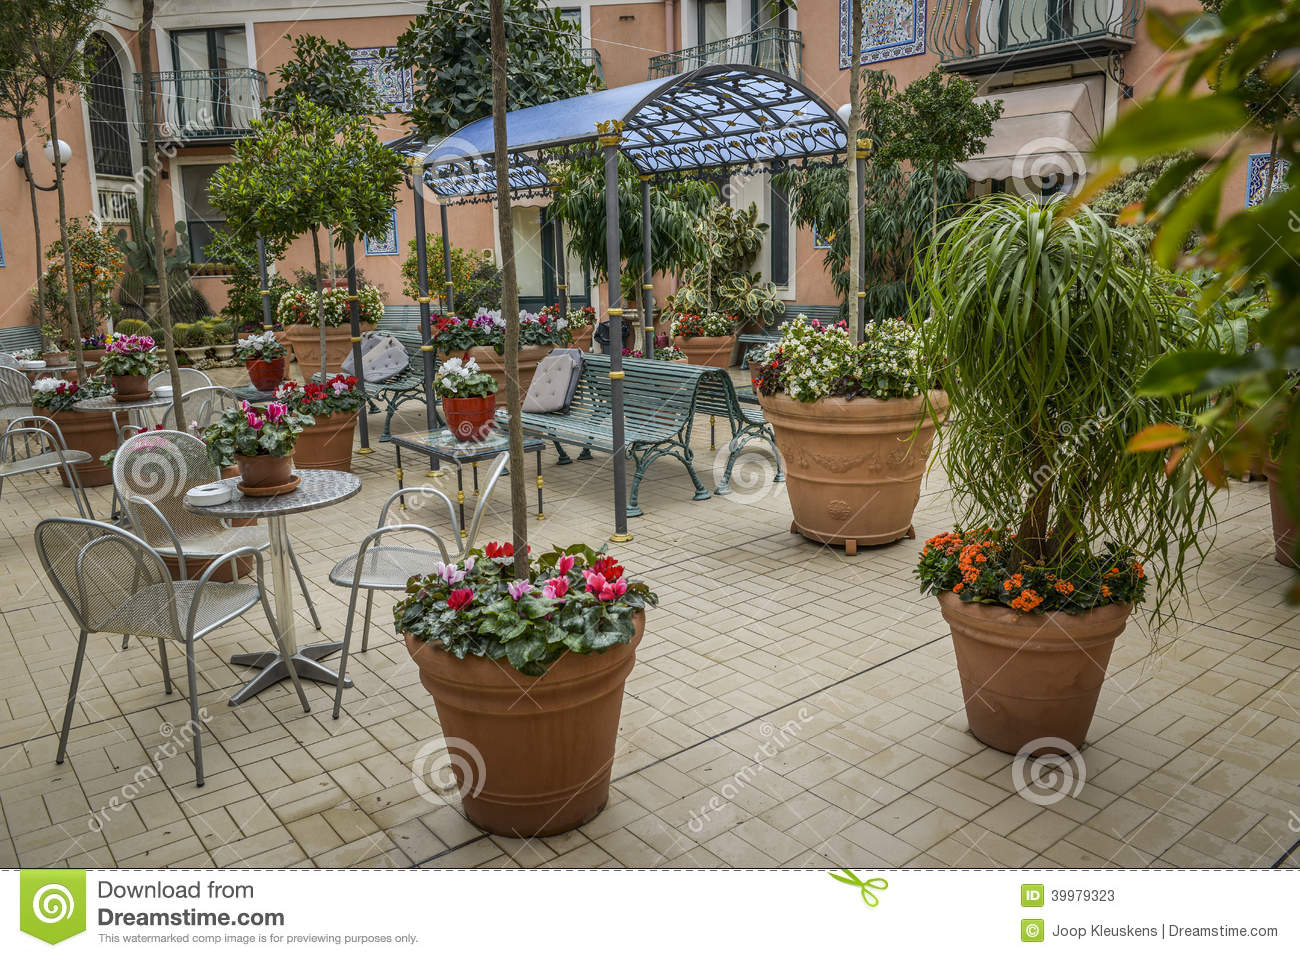 Jardin italien de terrasse photo stock image 39979323 for Jardin italien